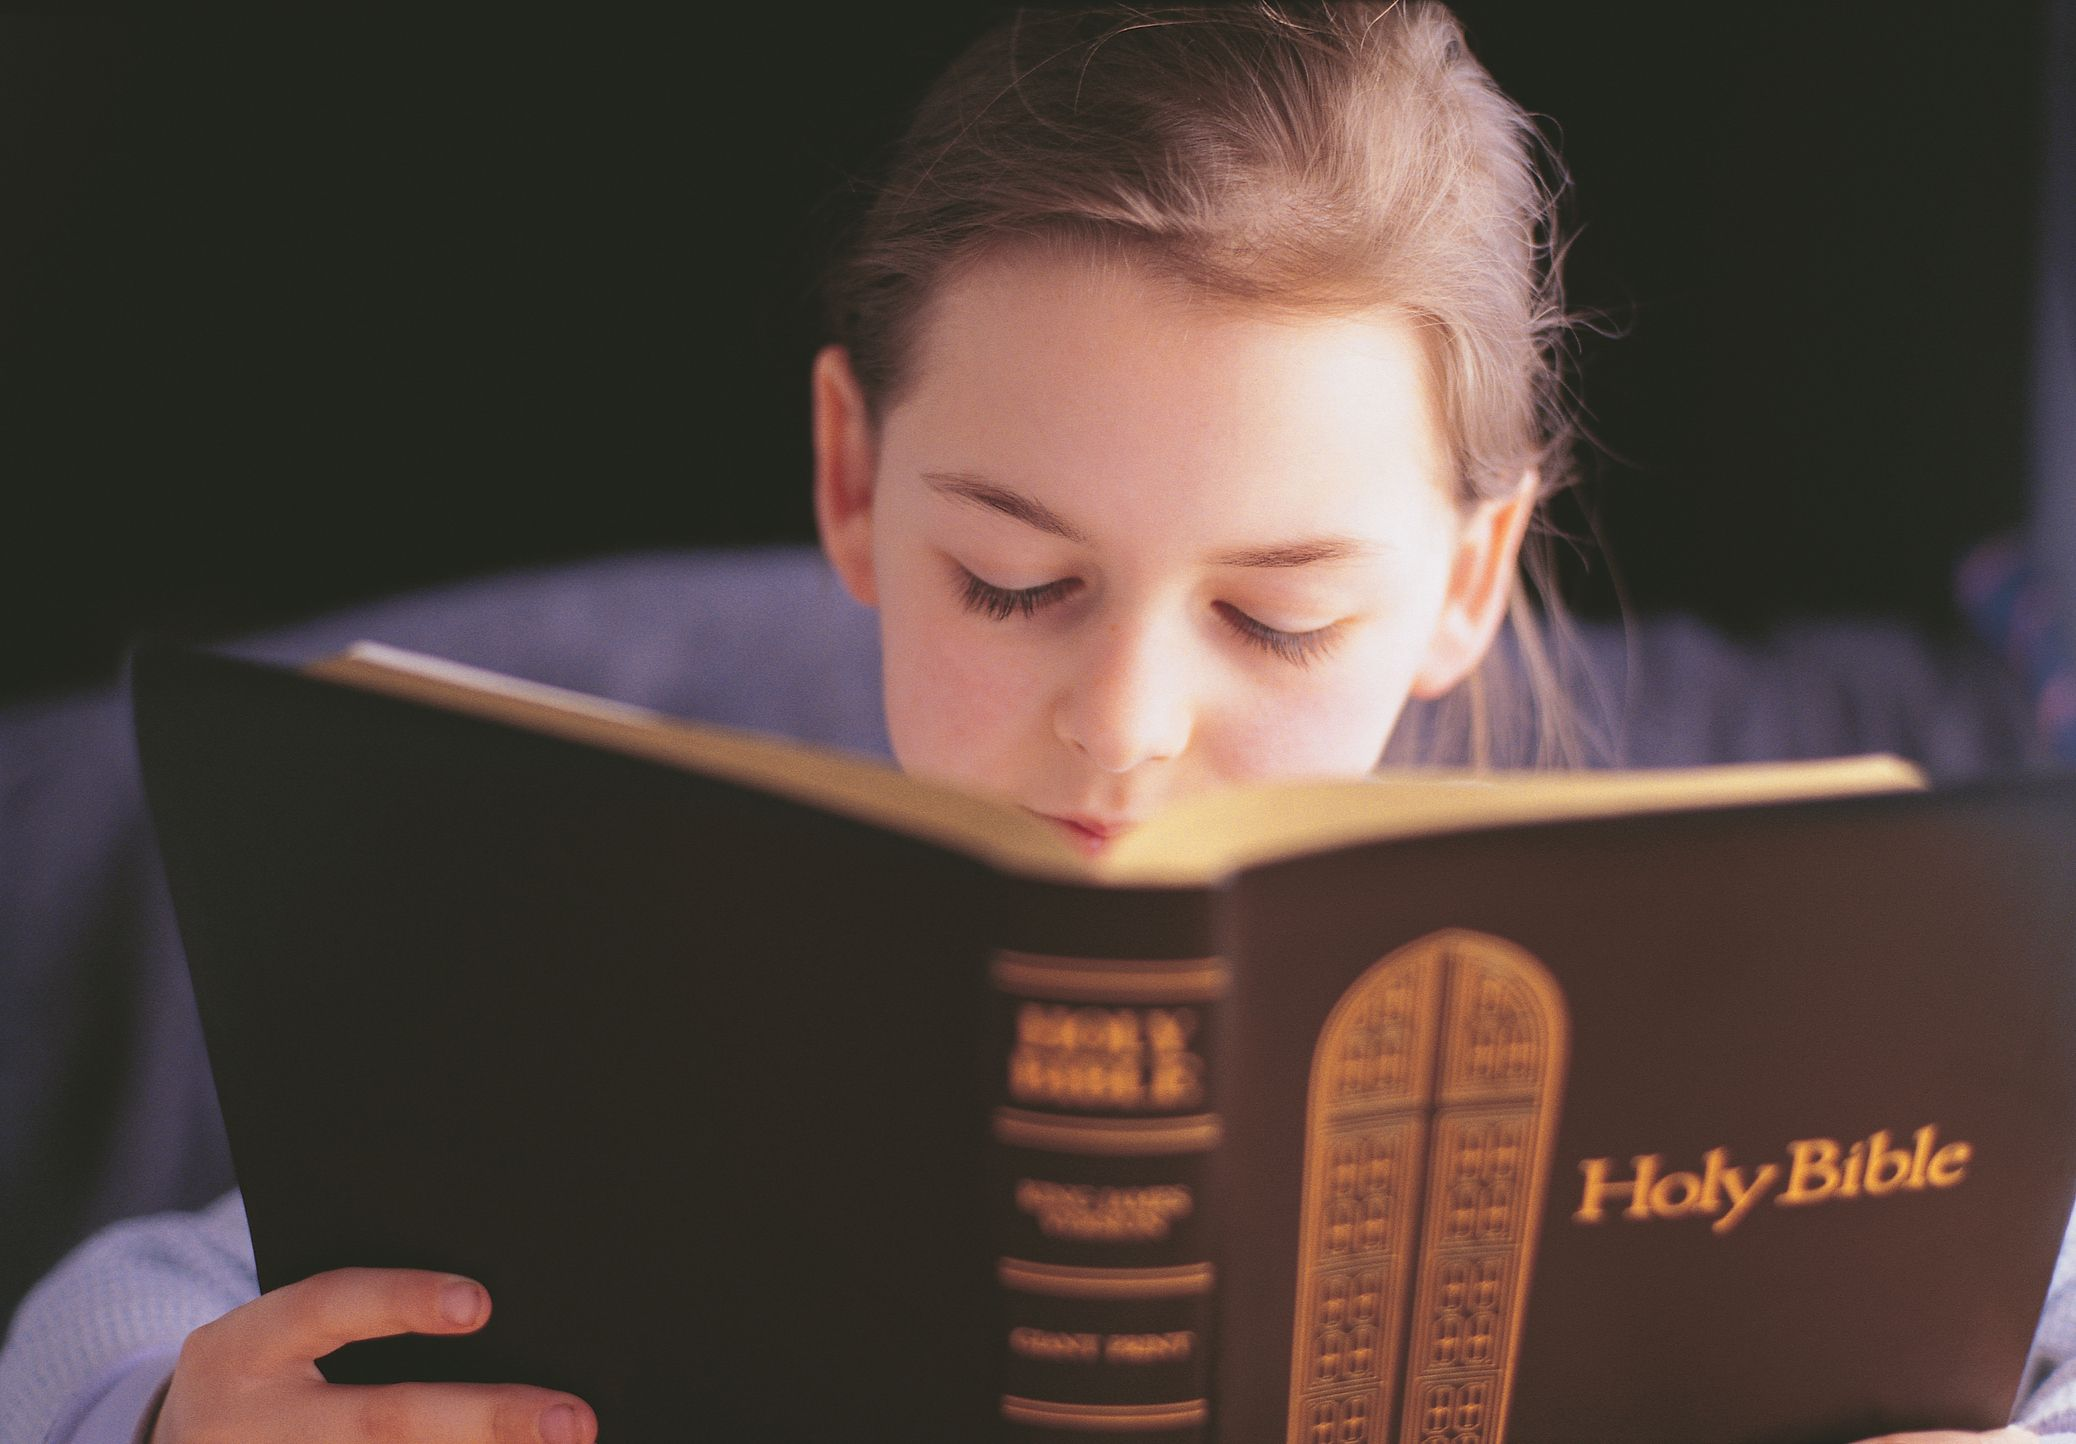 15 Bible Verses About Children to Read to the Kids